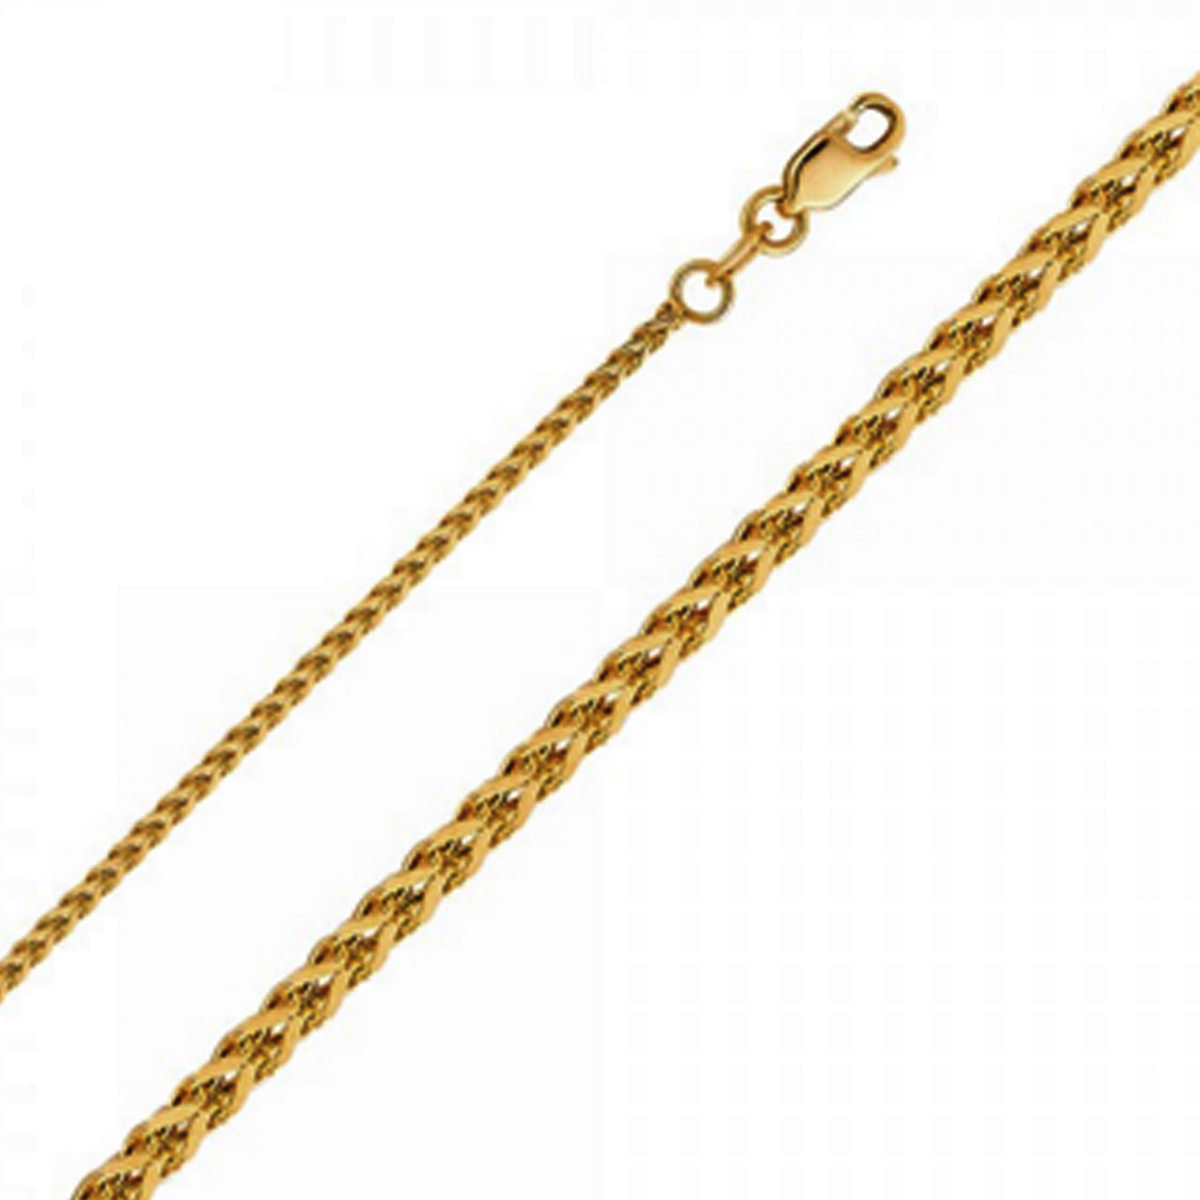 b499d298fbf0f Details about Rounded Box Links Real 14k Yellow Gold Franco Chain Square  Necklace Solid 1.7mm